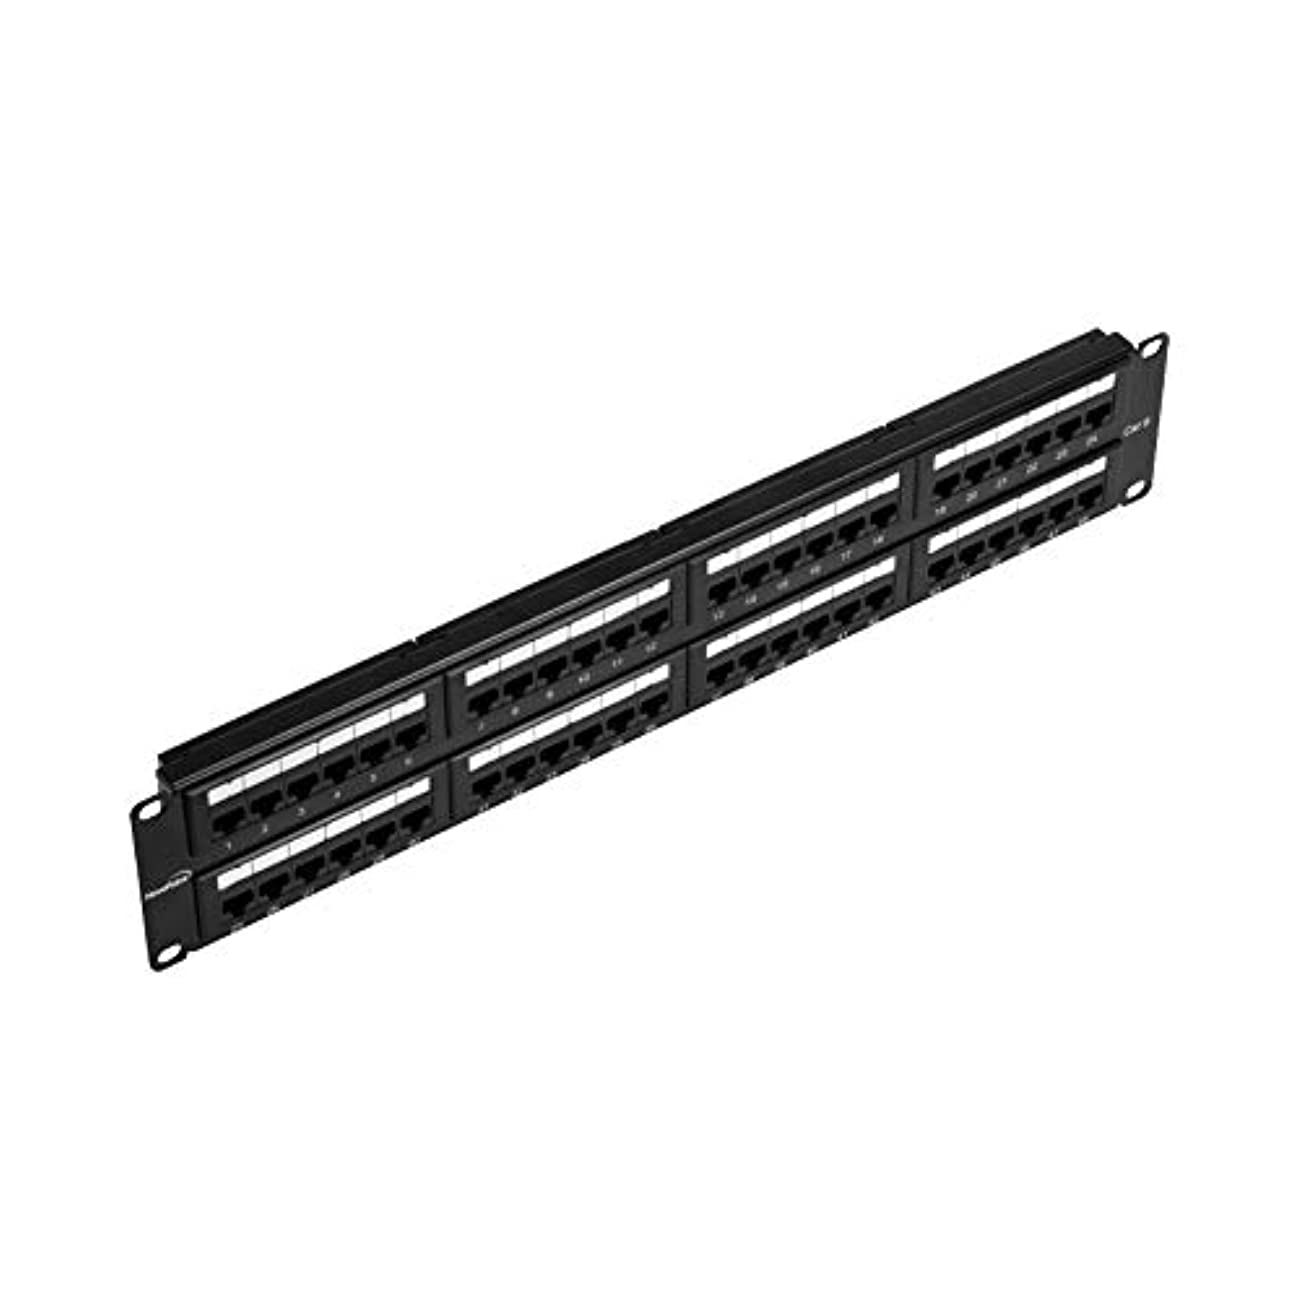 NavePoint 48-Port Cat6 UTP Unshielded Patch Panel for 19-Inch Wallmount Or Rackmount Ethernet Network 2U Black